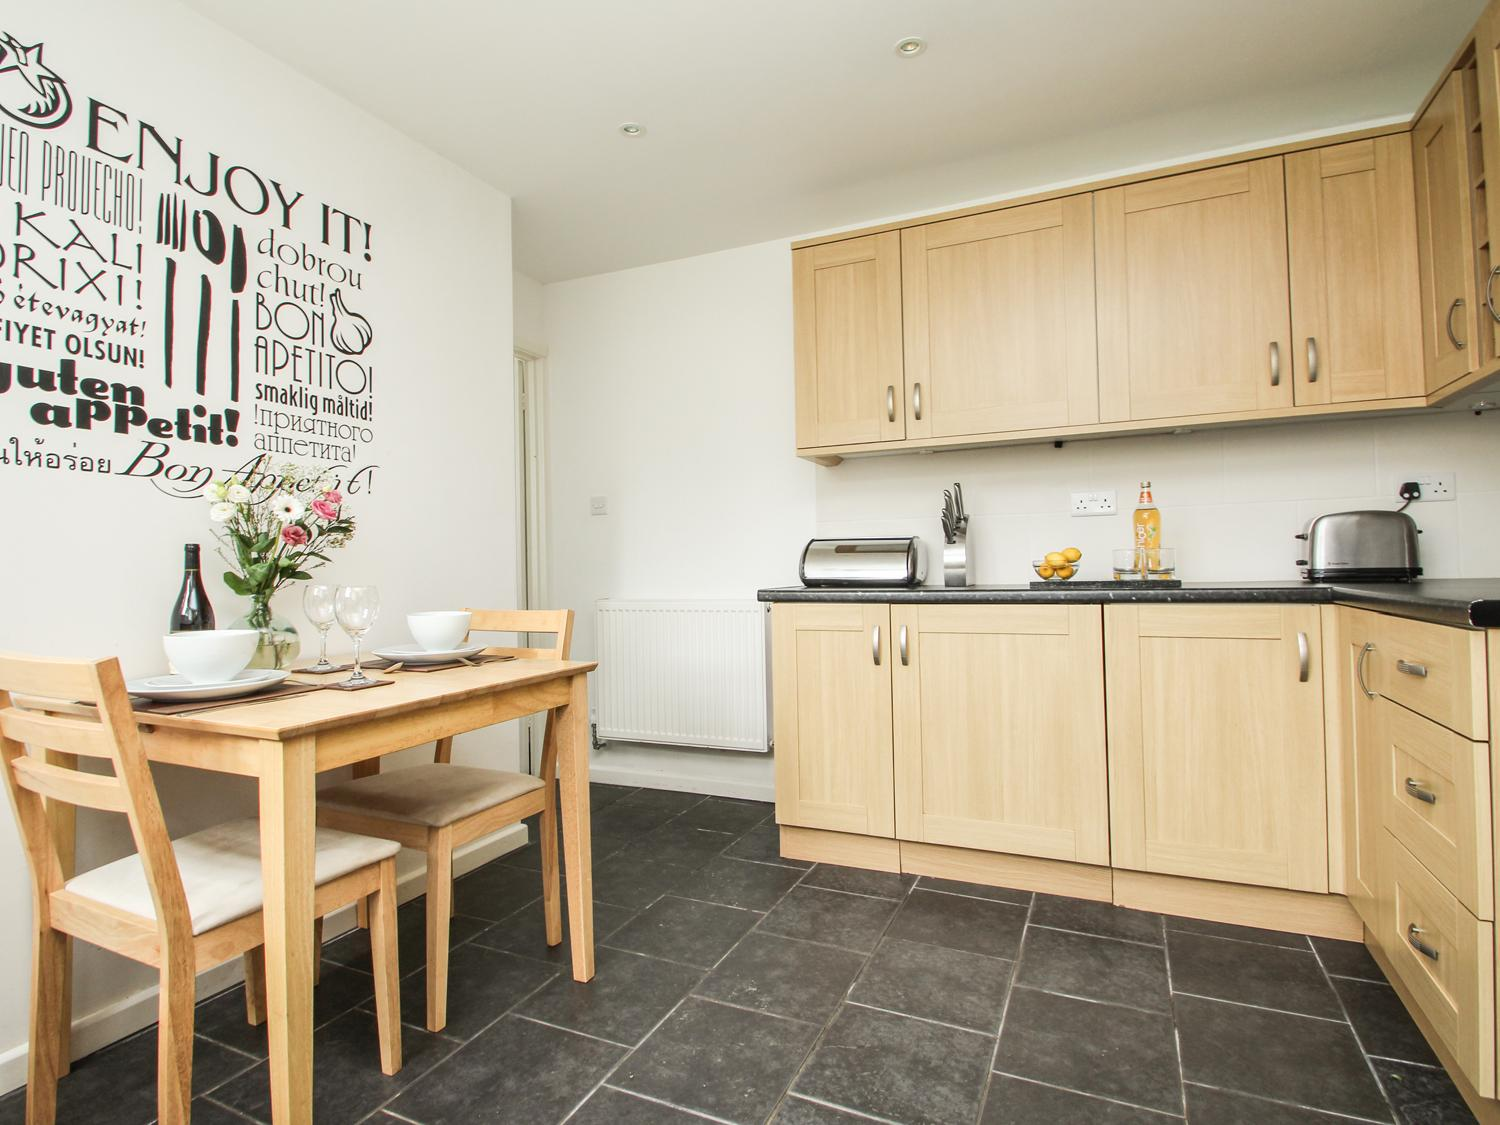 Holiday Cottage Reviews for Garden Flat - Self Catering Property in Mevagissey, Cornwall inc Scilly